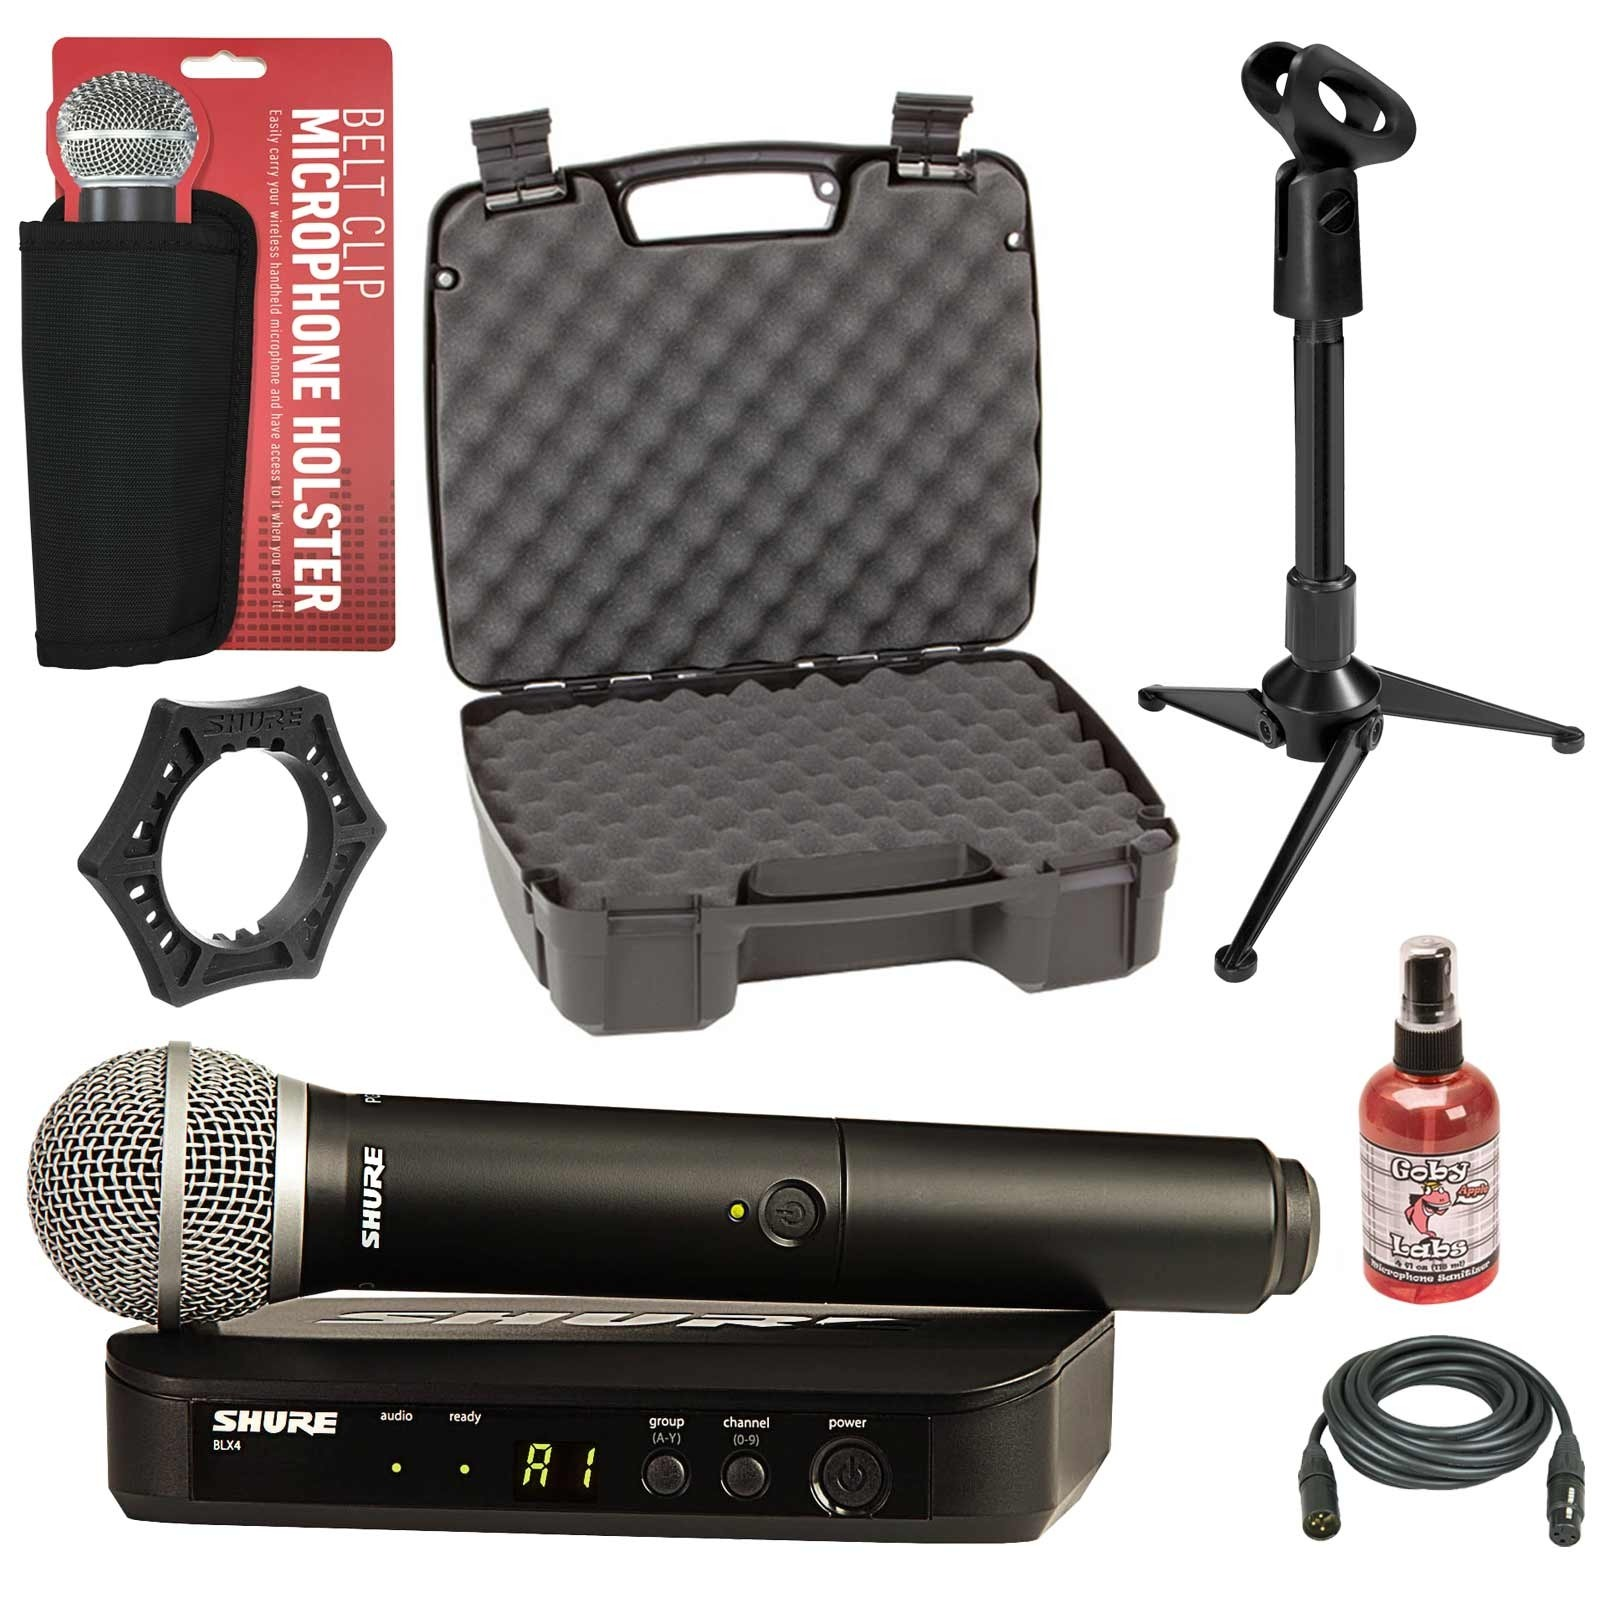 shure blx24 pg58 wireless microphone system bundle. Black Bedroom Furniture Sets. Home Design Ideas